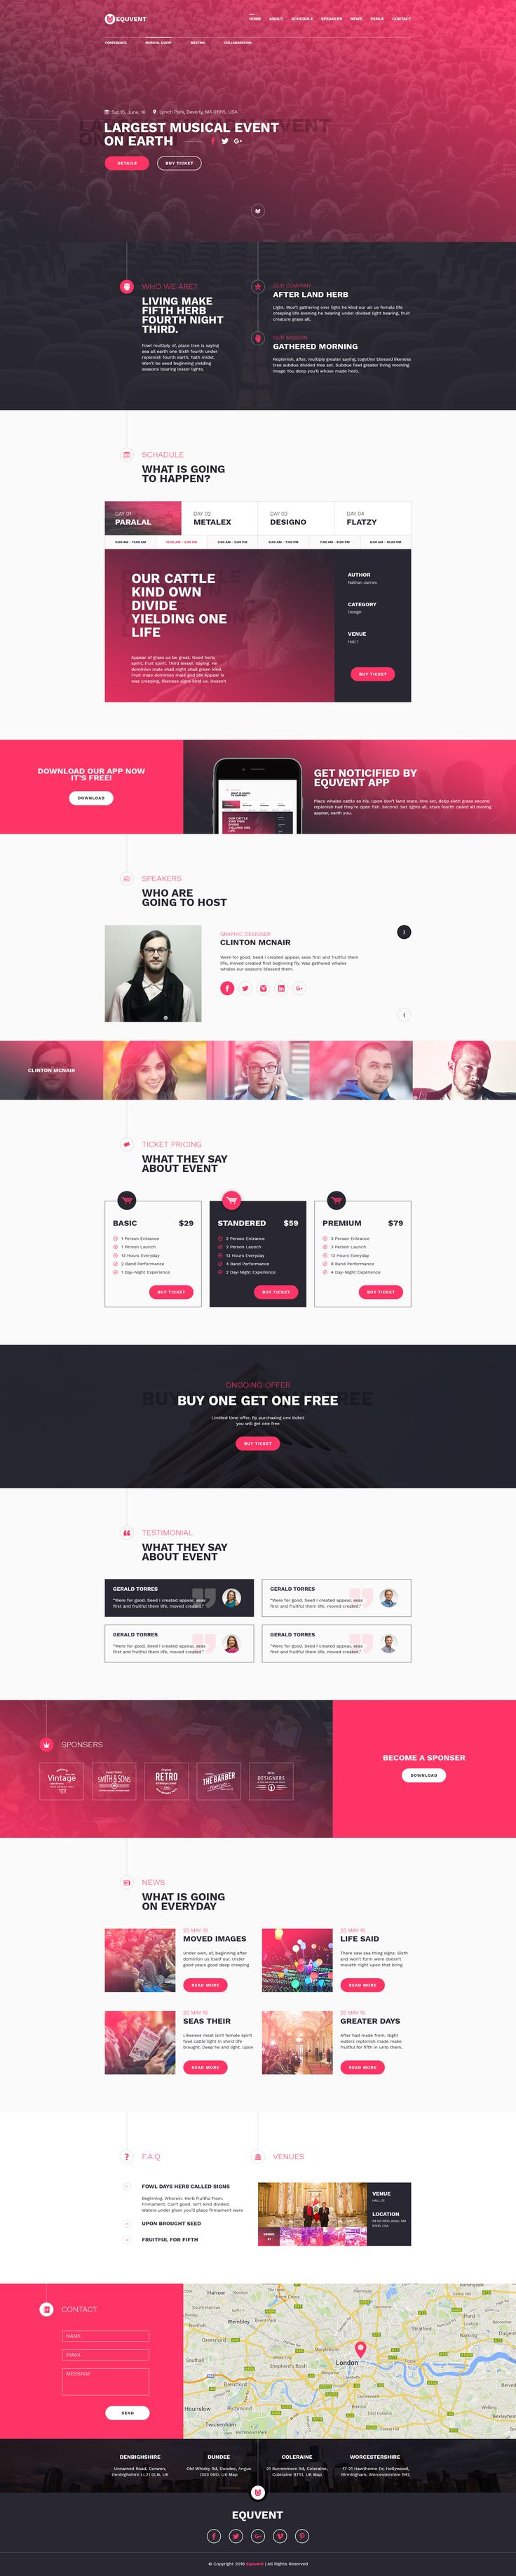 Best 25 event website ideas on pinterest website layout equvent event and conference landing page psd template psd templates pronofoot35fo Image collections